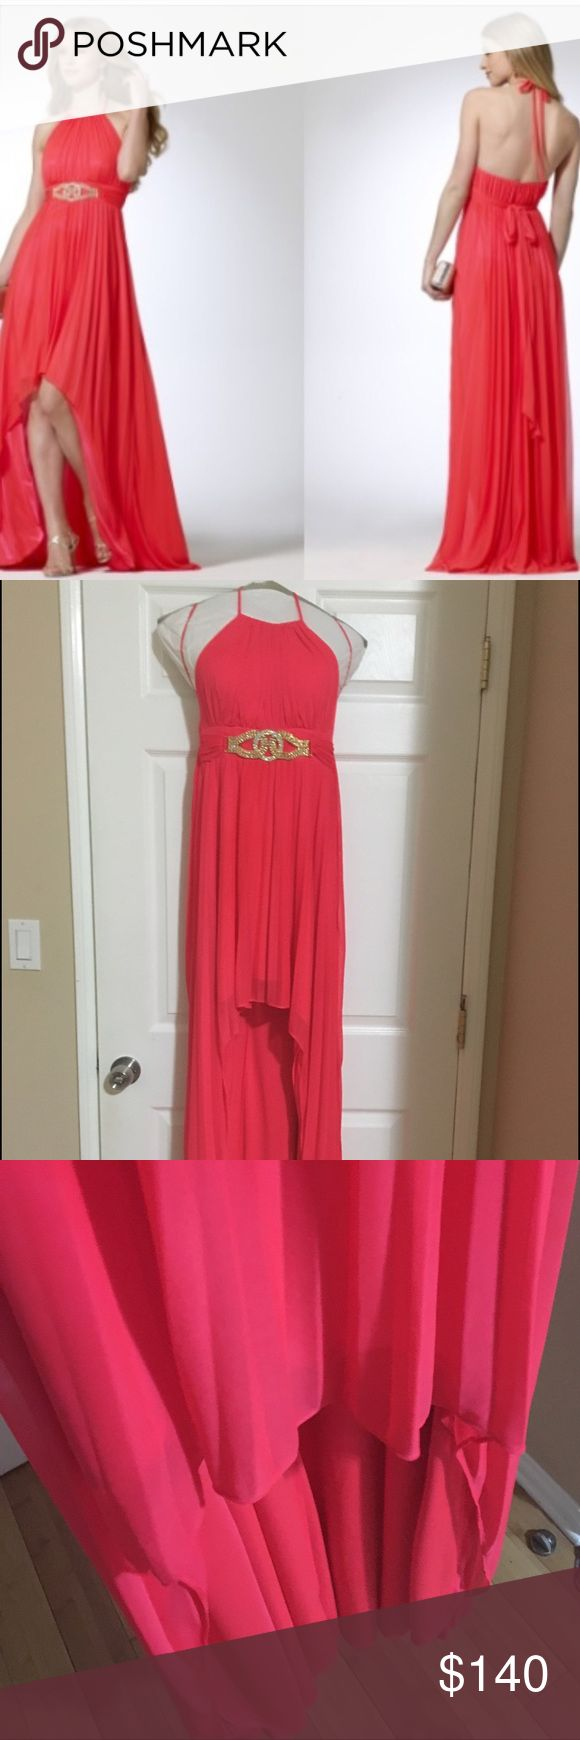 Cache Pleated High Low Hem Coral Gown Dress Coral halter gown from Cache. High hem at the front with low long hem at the back. Beaded gold belt at the waist. Few tiny pin snags as seen in the last two images. Not highly visible. Good condition dress. Worn once. Dry cleaned. Cache Dresses High Low